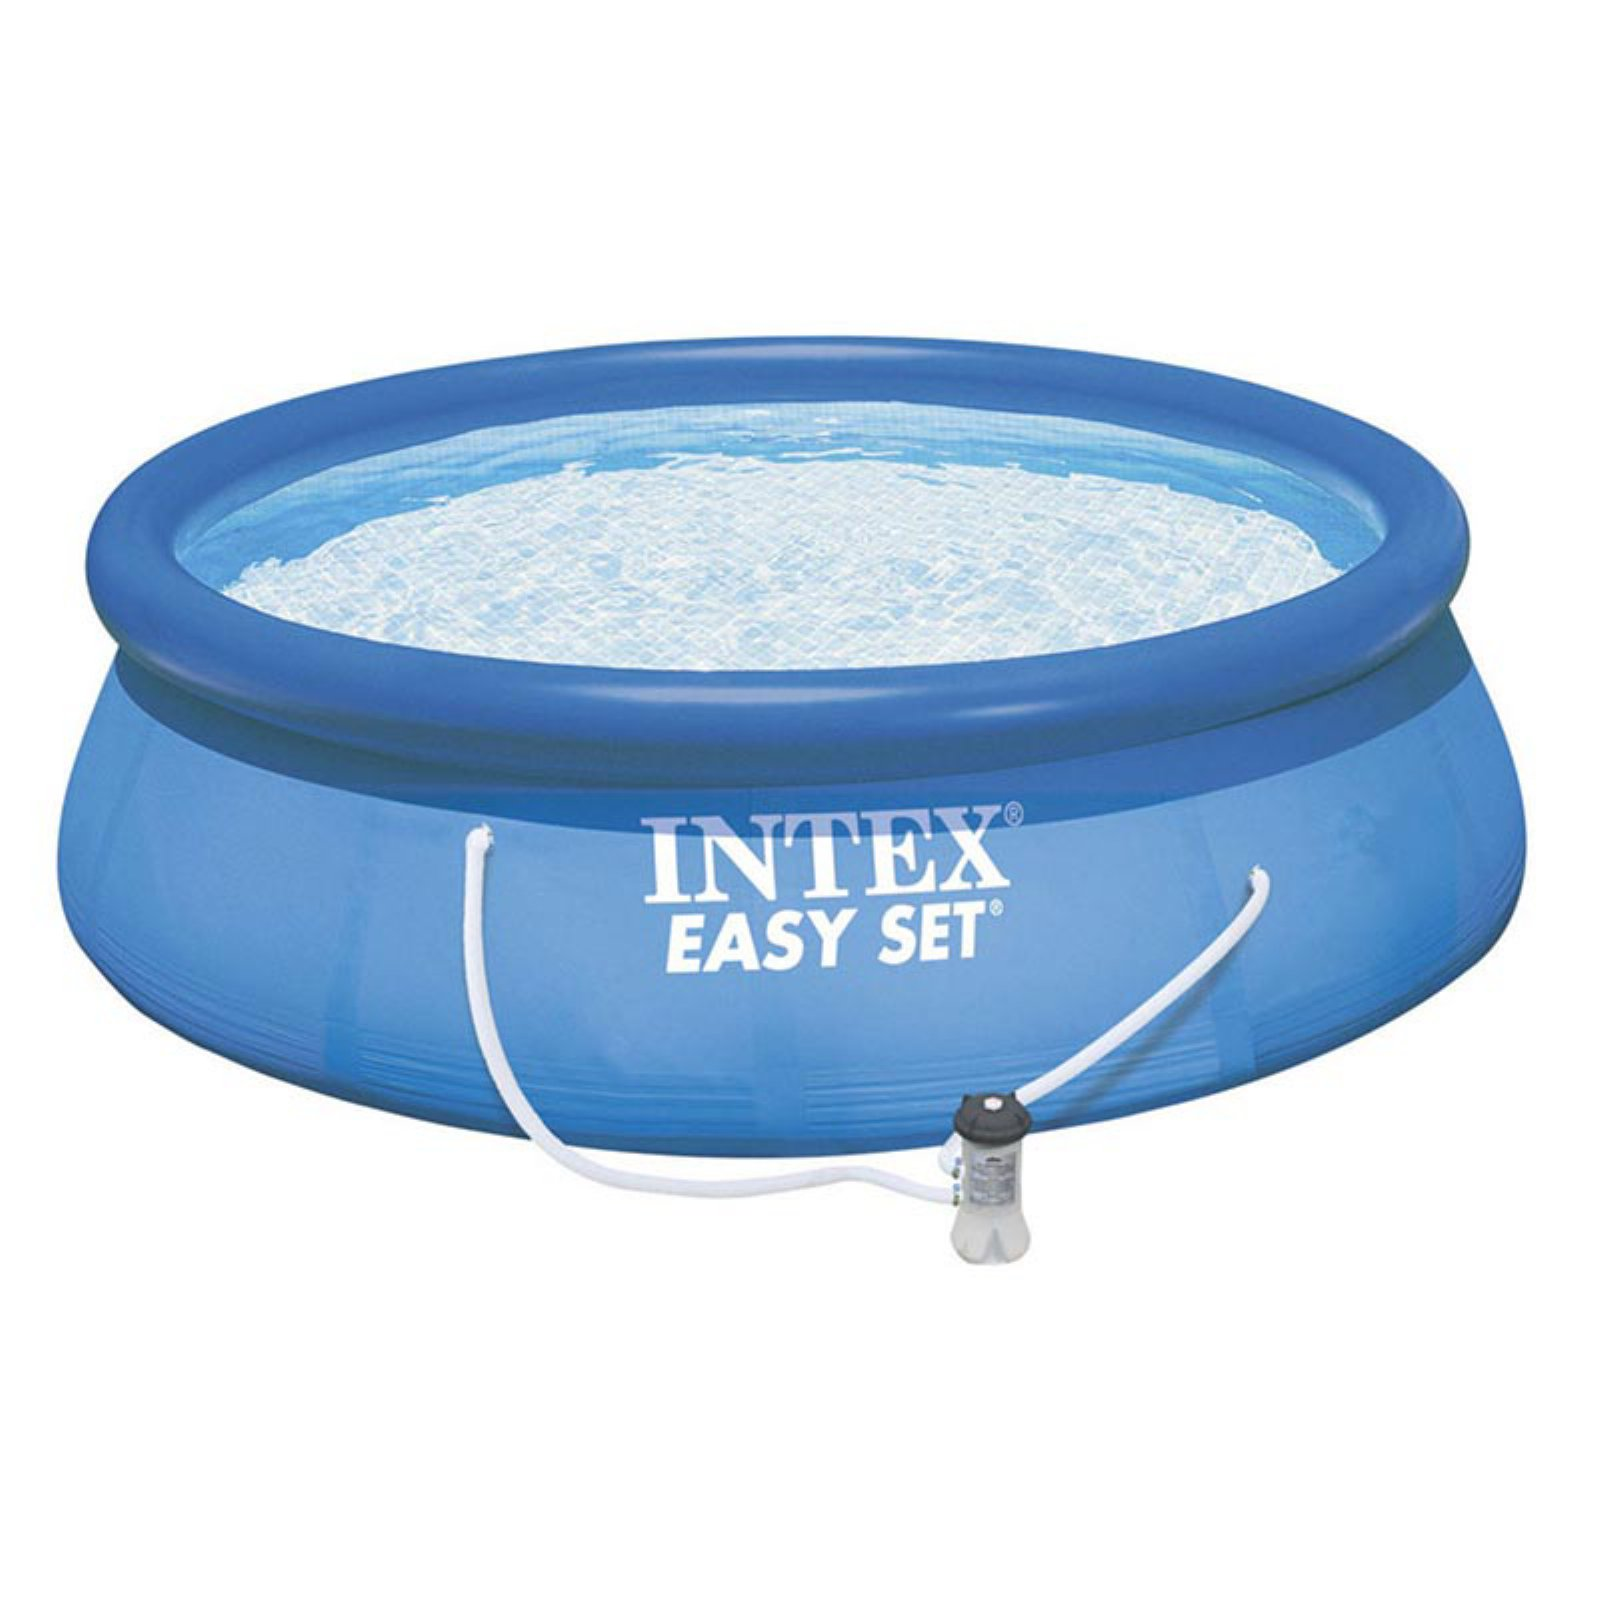 Intex 15' x 33'' Easy Set Above Ground Swimming Pool with Filter Pump